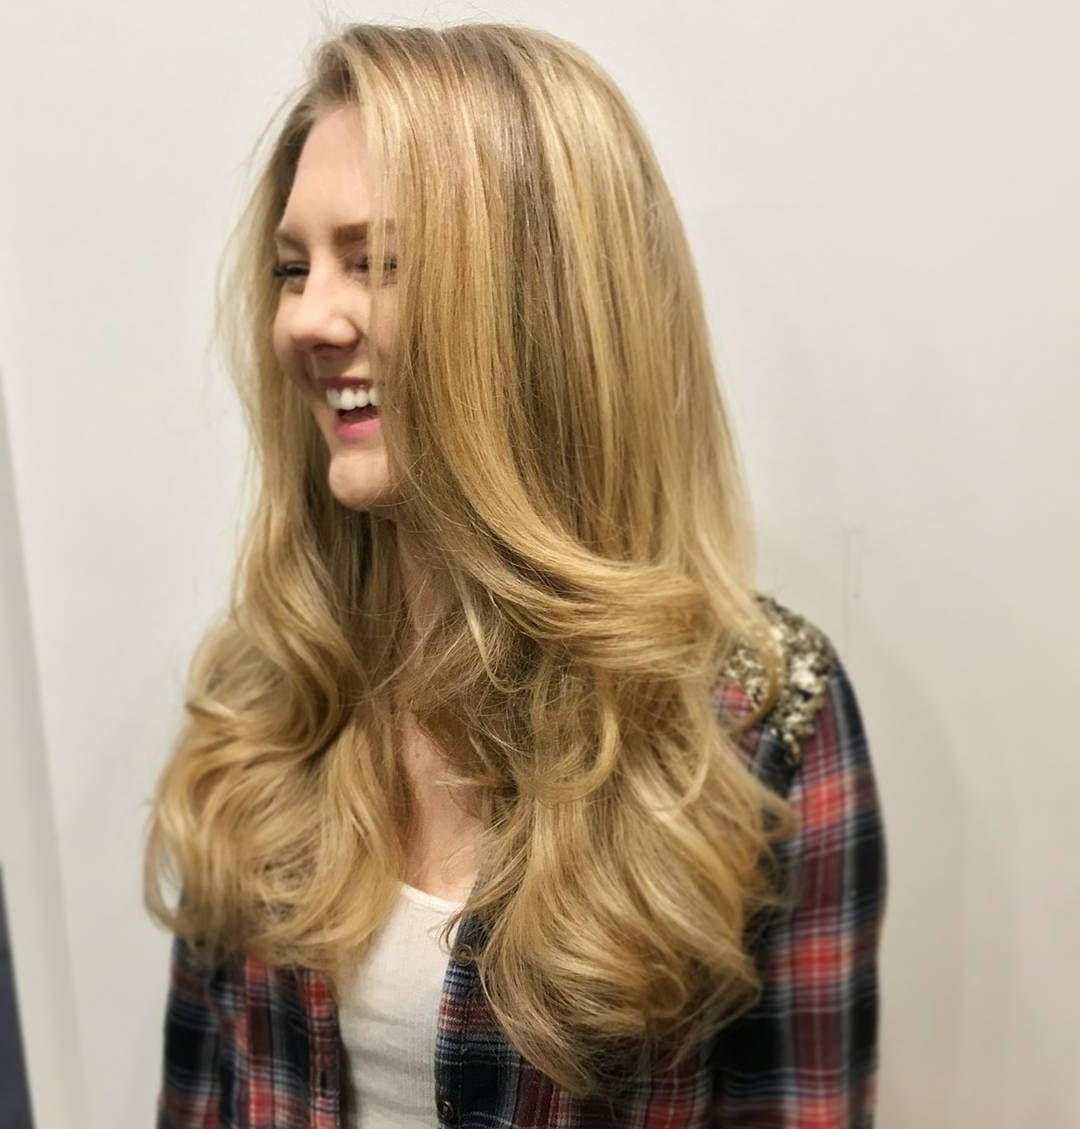 Awesome 45 Brilliant Light Blonde Hair Ideas – Sweet And Bright In Recent Layered Bright And Beautiful Locks Blonde Hairstyles (View 4 of 20)